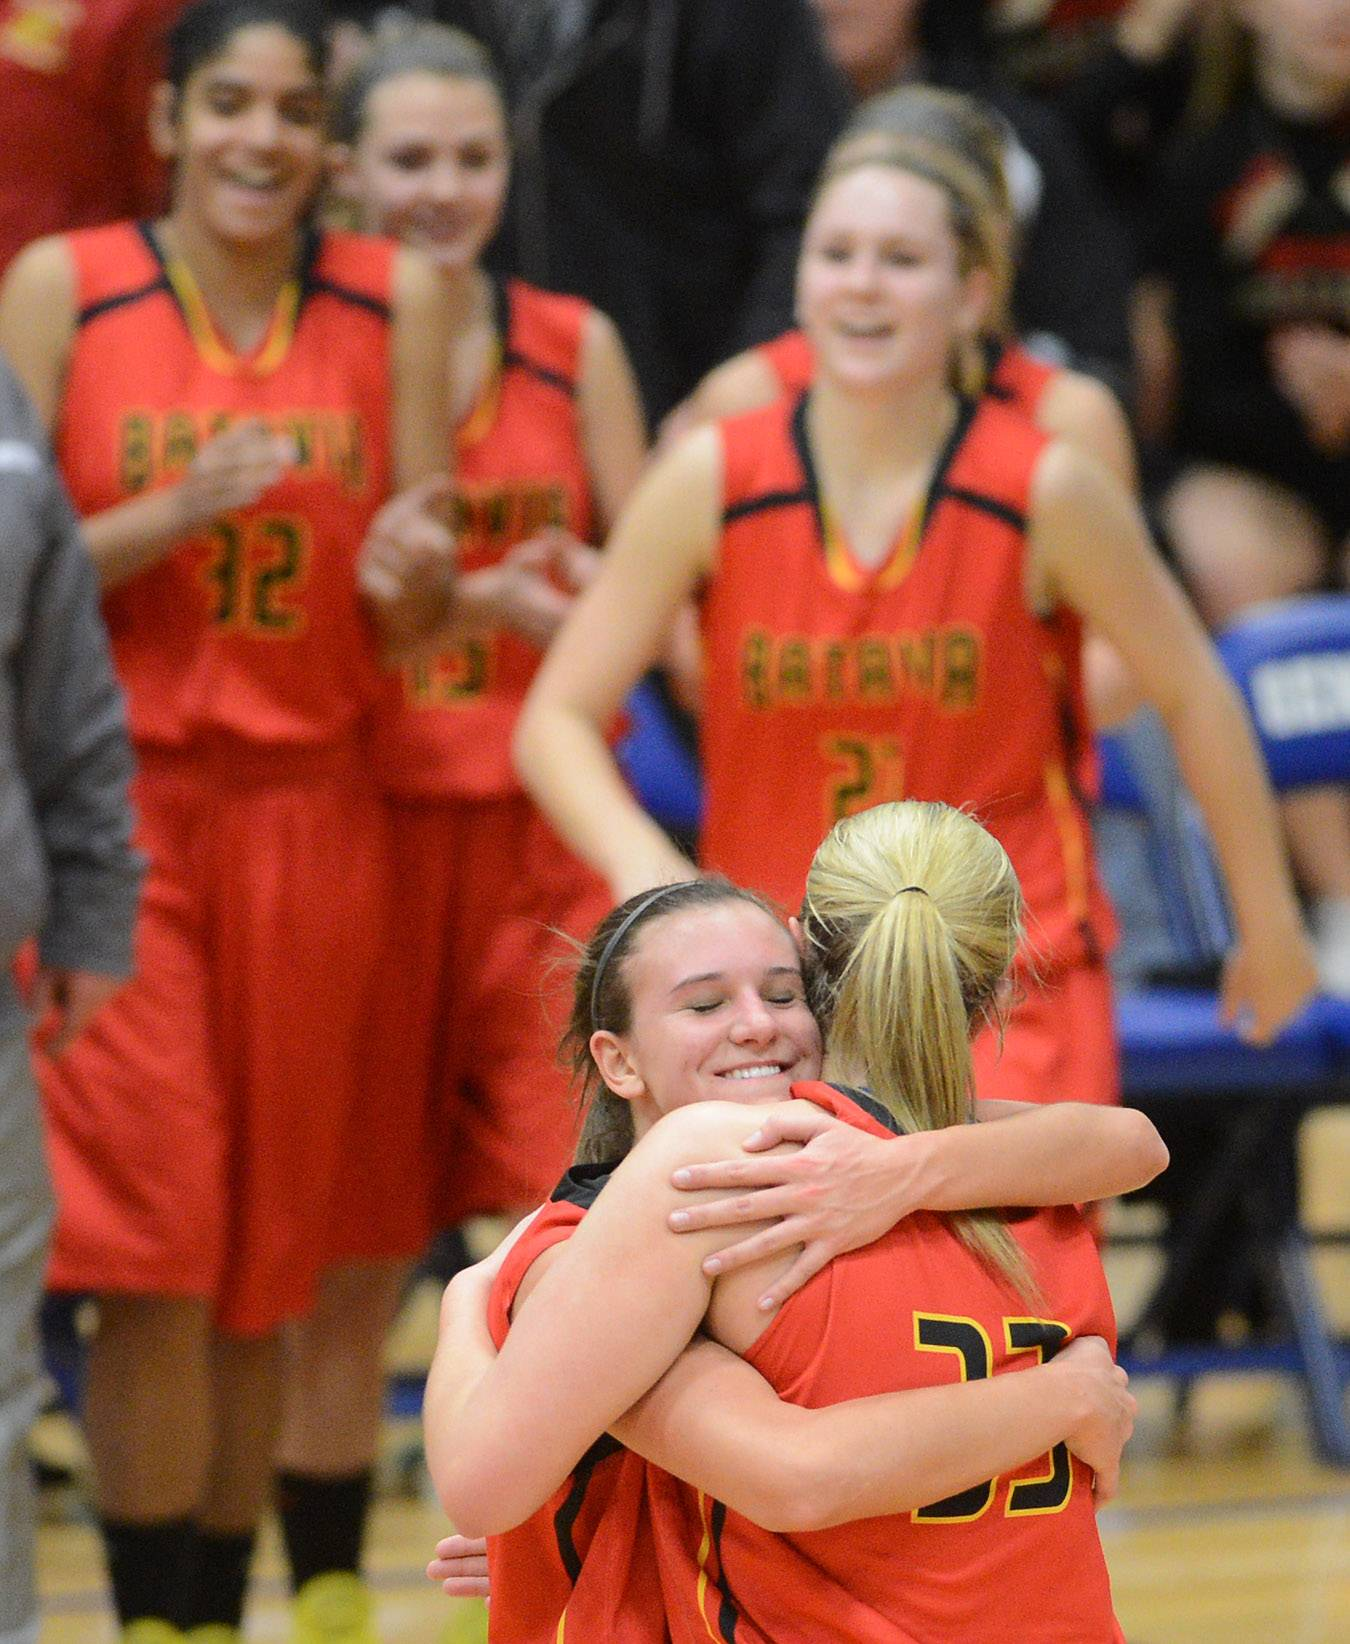 Batavia's Liza Fruendt hugs teammate Erin Bayram after she scored 51 points in a win over Geneva, one of the most memorable moments of the year.